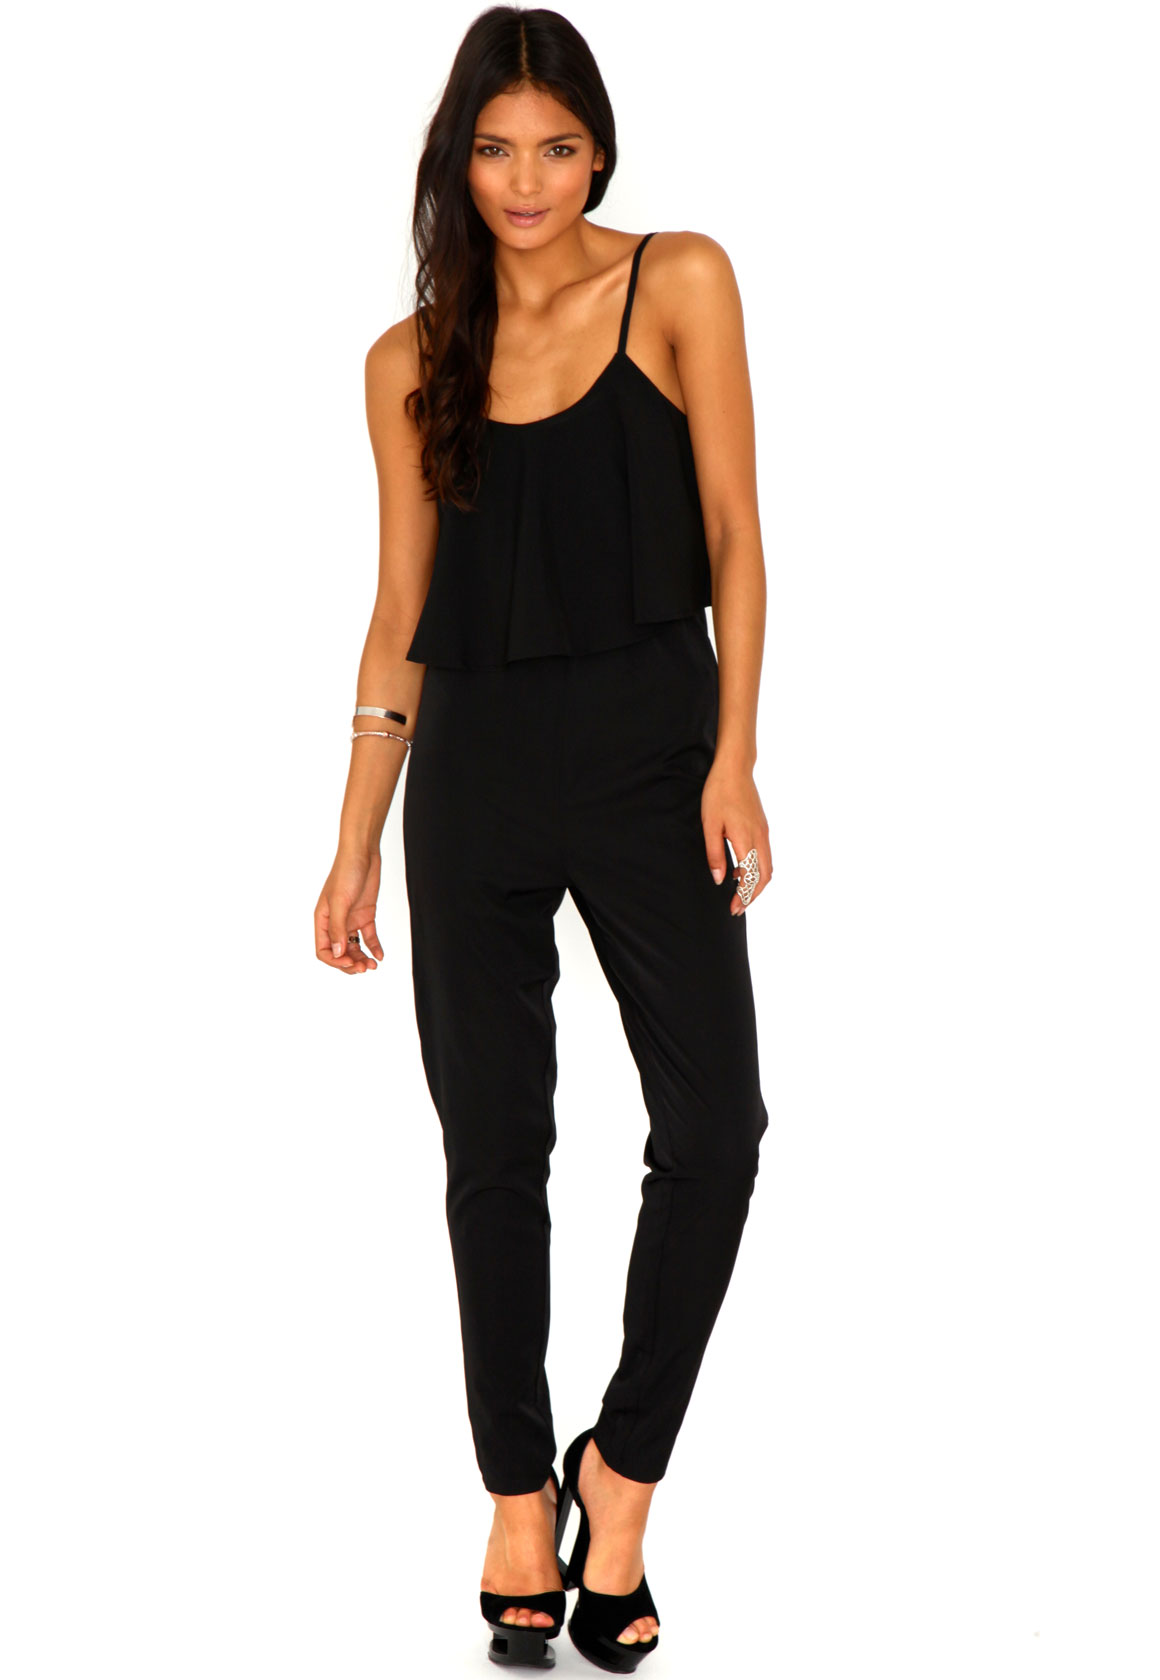 Clarice Strappy Frilled Jumpsuit In Black